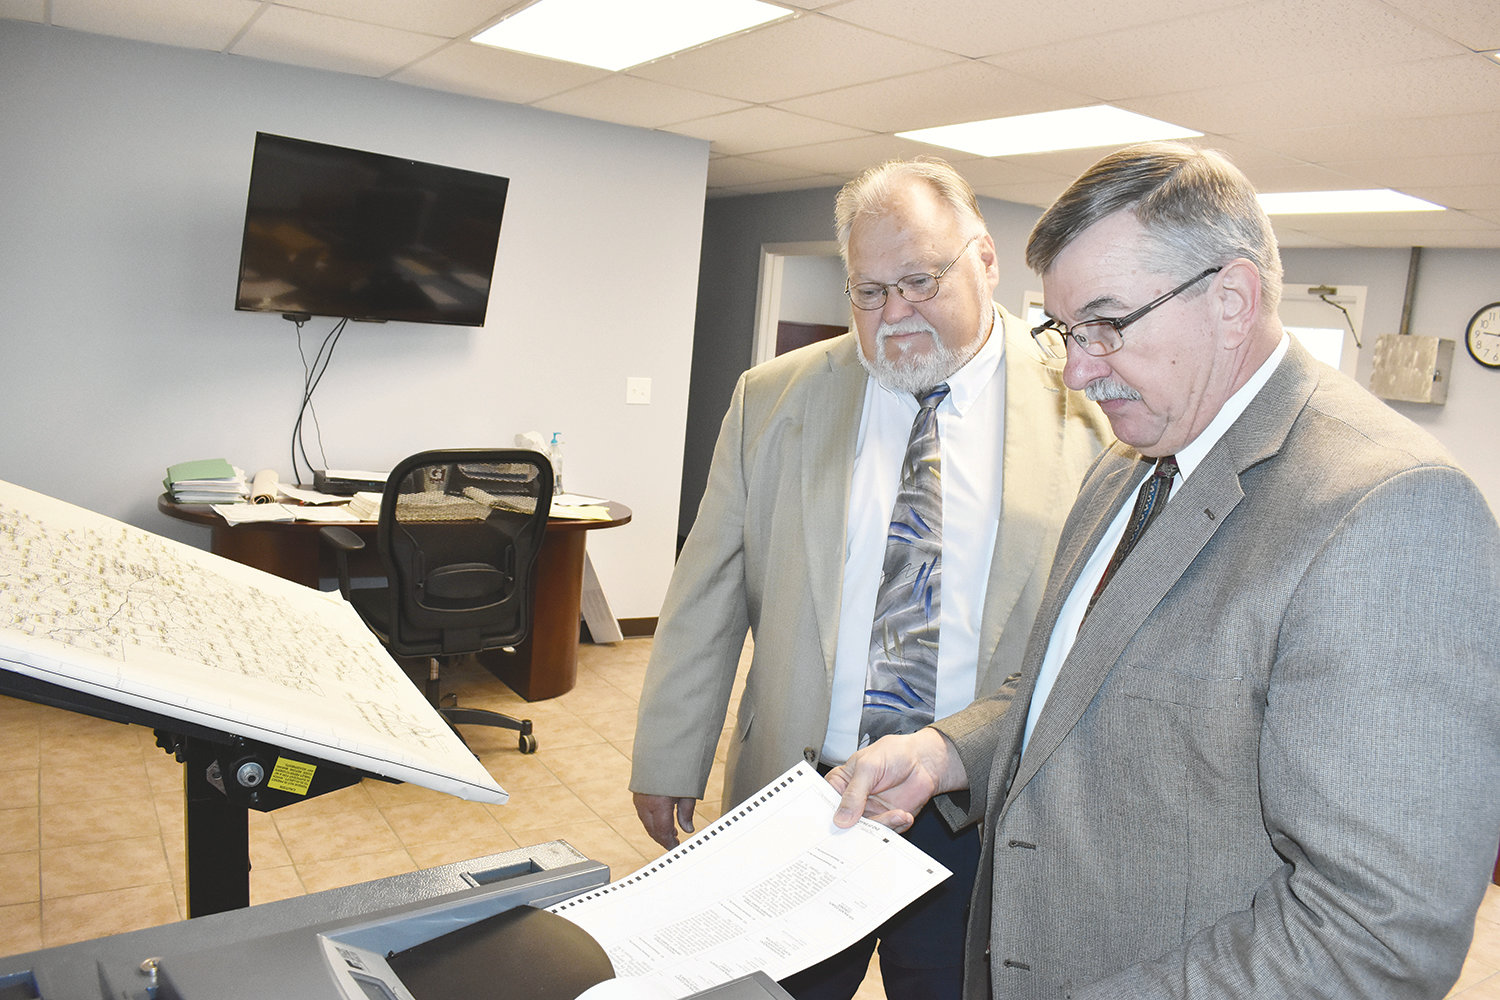 Walker County Probate Judge Rick Allison and Probate Judge-elect A. Lee Tucker review elections procedures on Oct. 25 during a test of election machines for the 2018 General Election. Tucker will be sworn in as the new probate judge on Jan. 14 at the Walker County Courthouse at noon.